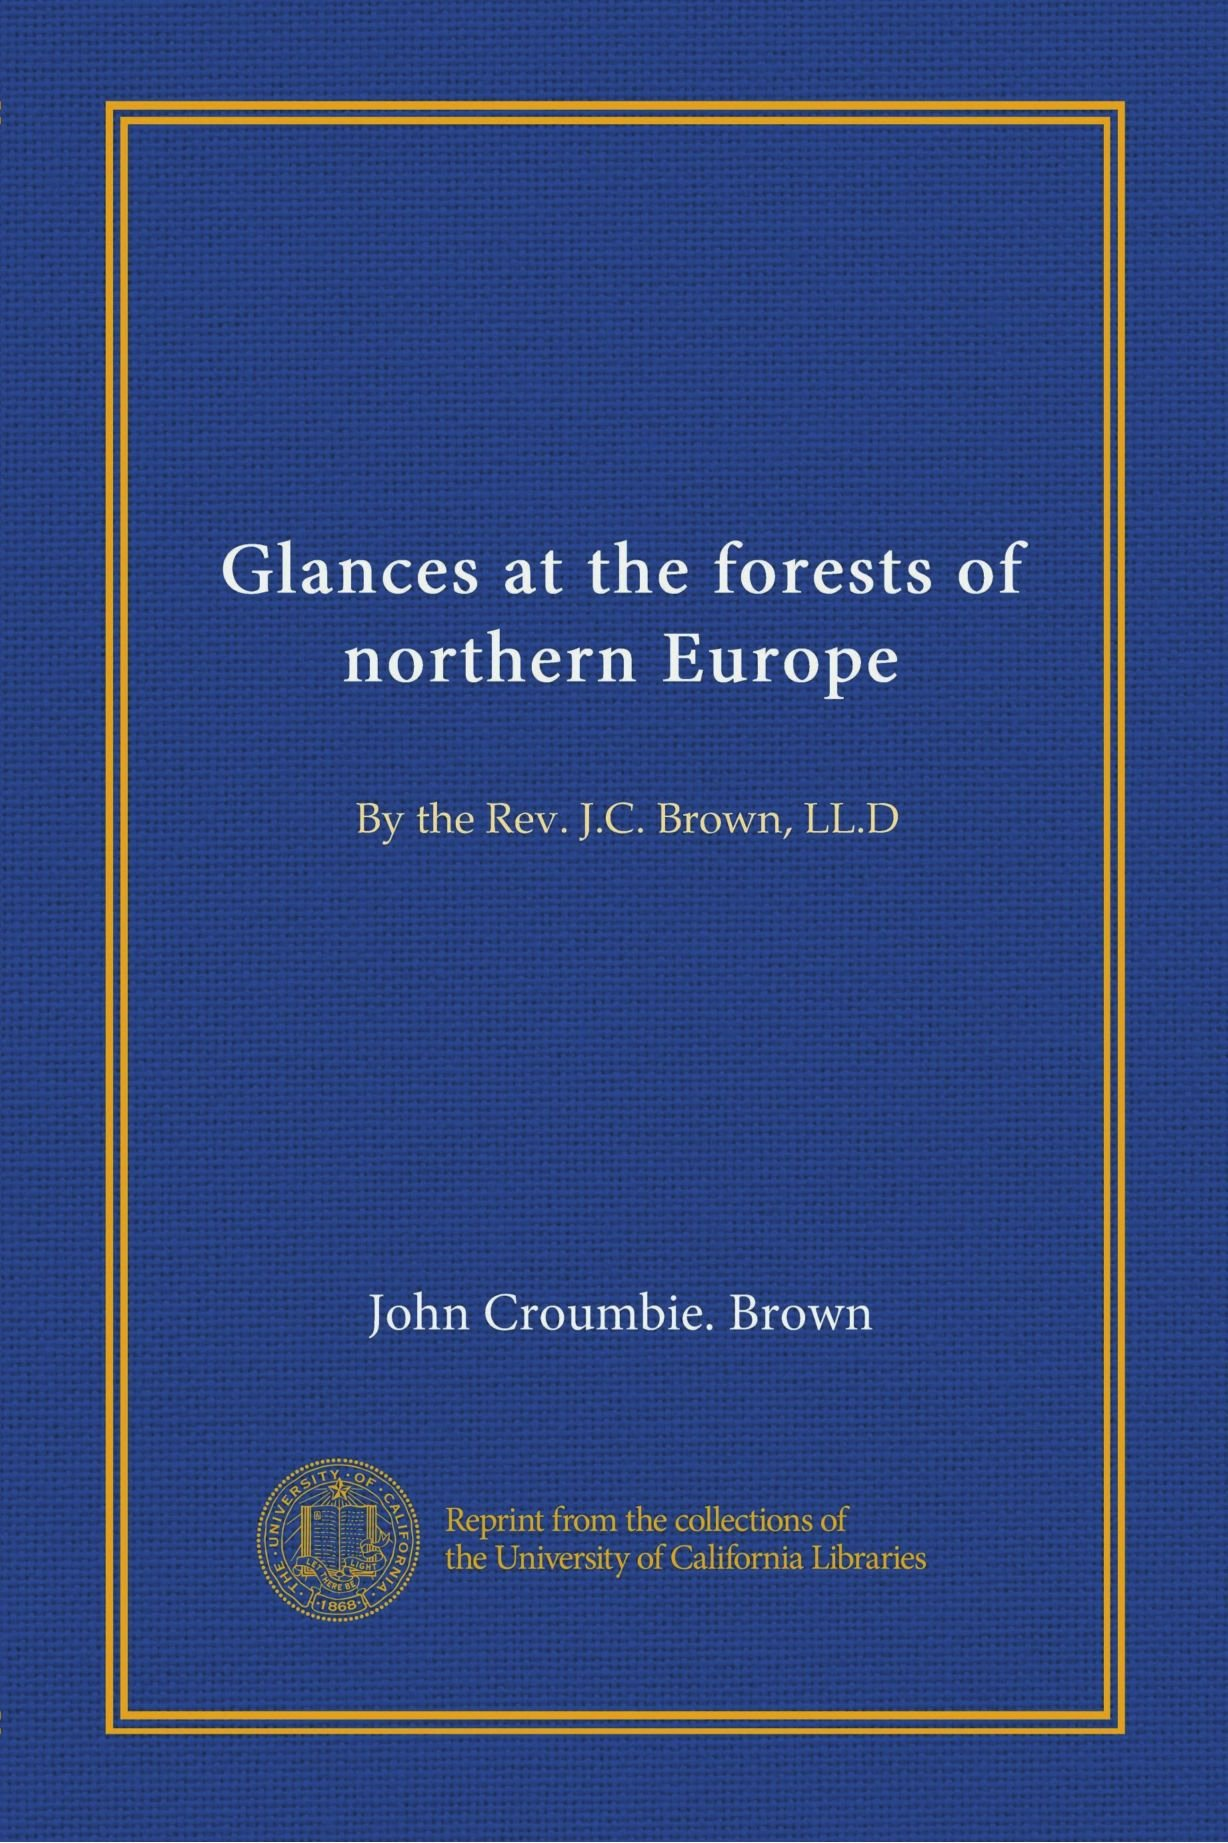 Glances at the forests of northern Europe (Vol-1): By the Rev. J.C. Brown, LL.D pdf